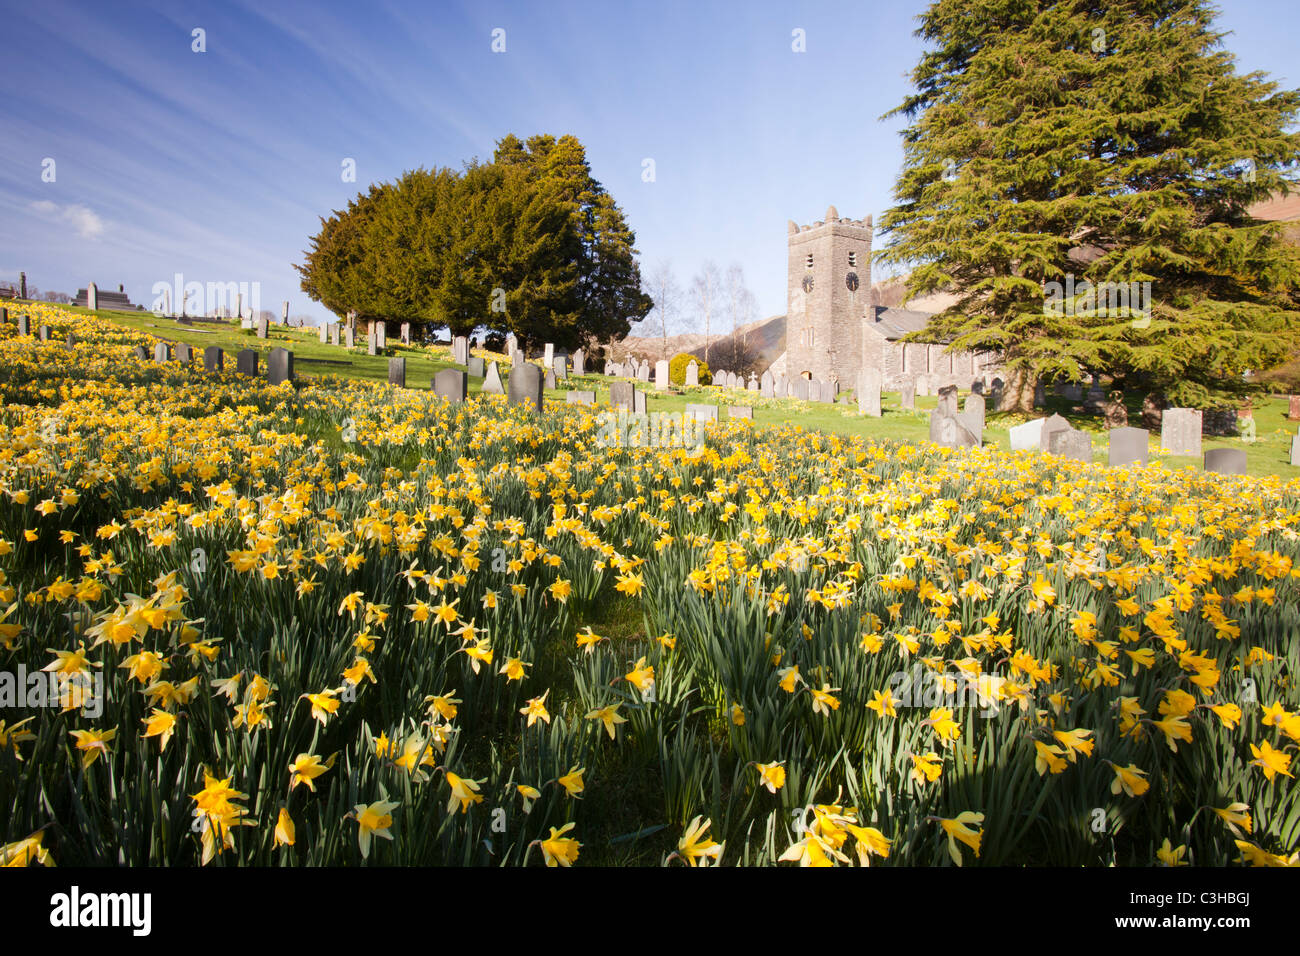 Wild Daffodils (Narcissus pseudonarcissus) flowering in Spring, in Troutbeck churchyard, Lake District, UK. - Stock Image